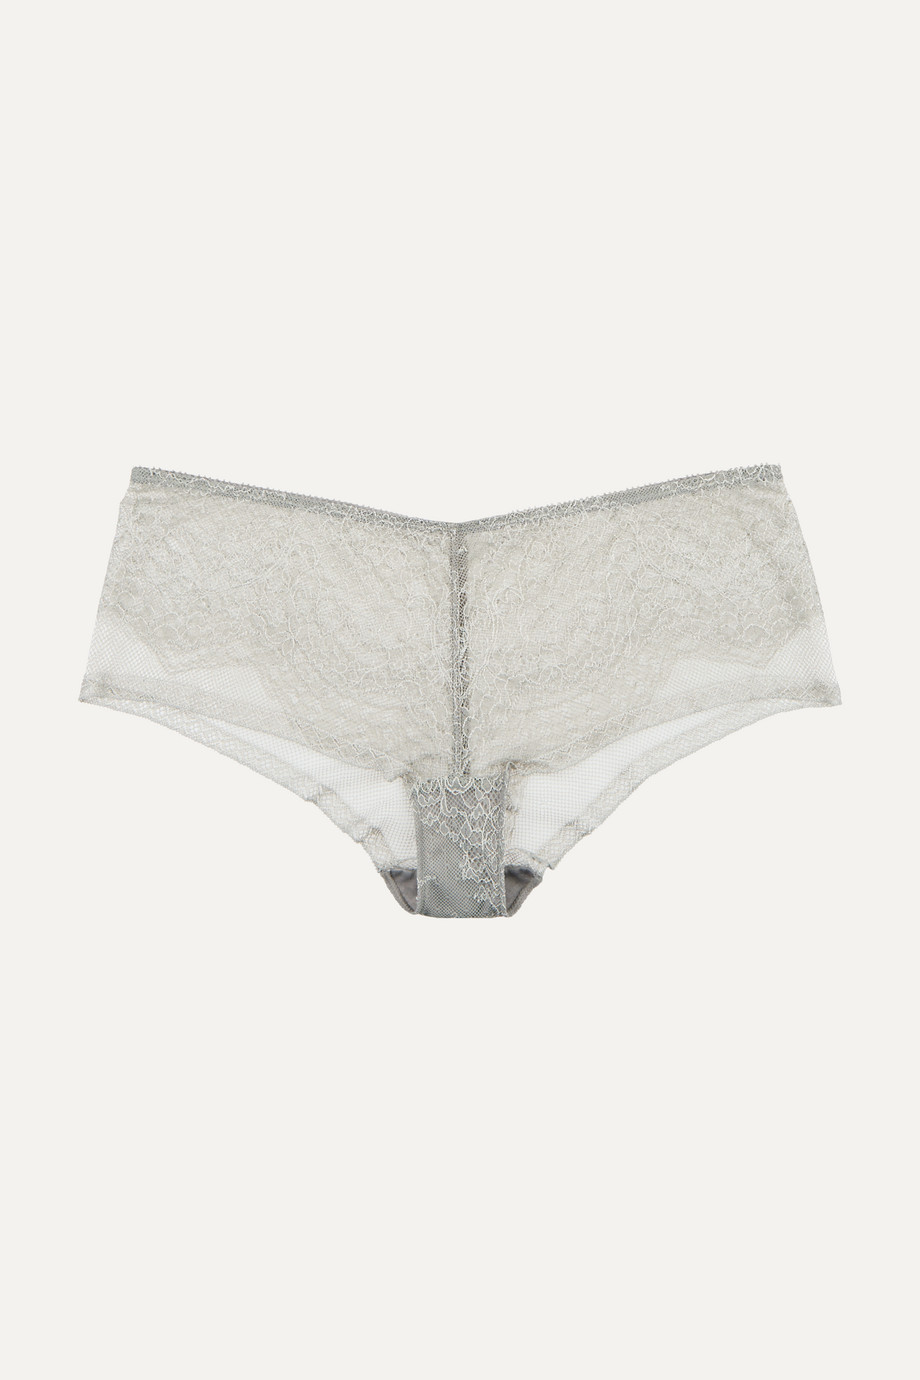 Eres Montsouris Vincennes Chantilly lace and tulle briefs